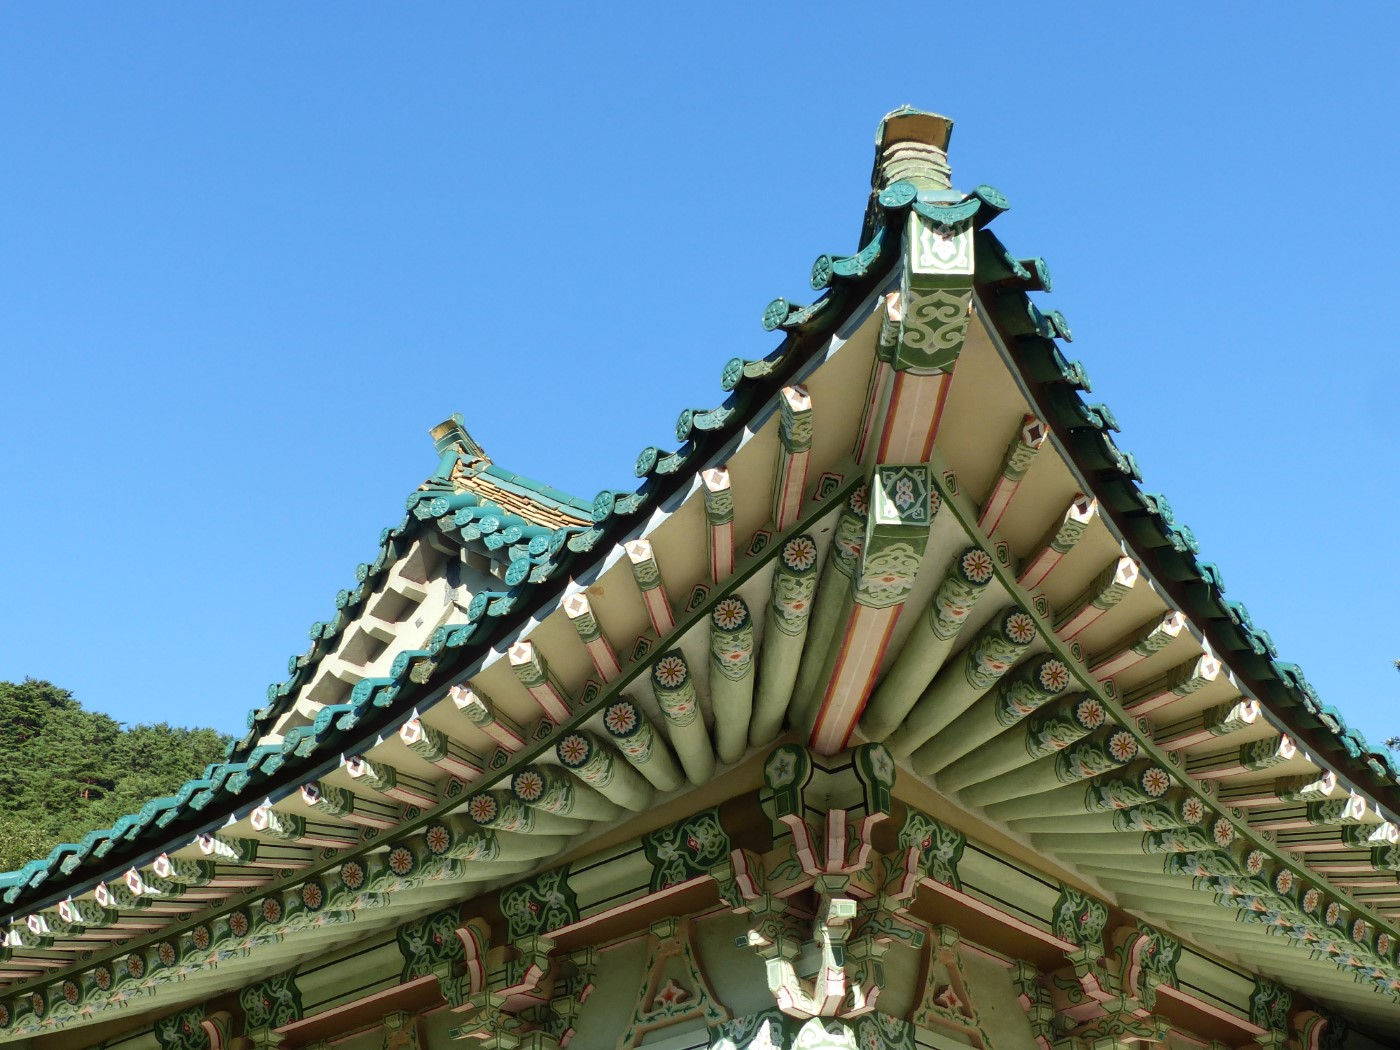 Temple roof against a blue sky